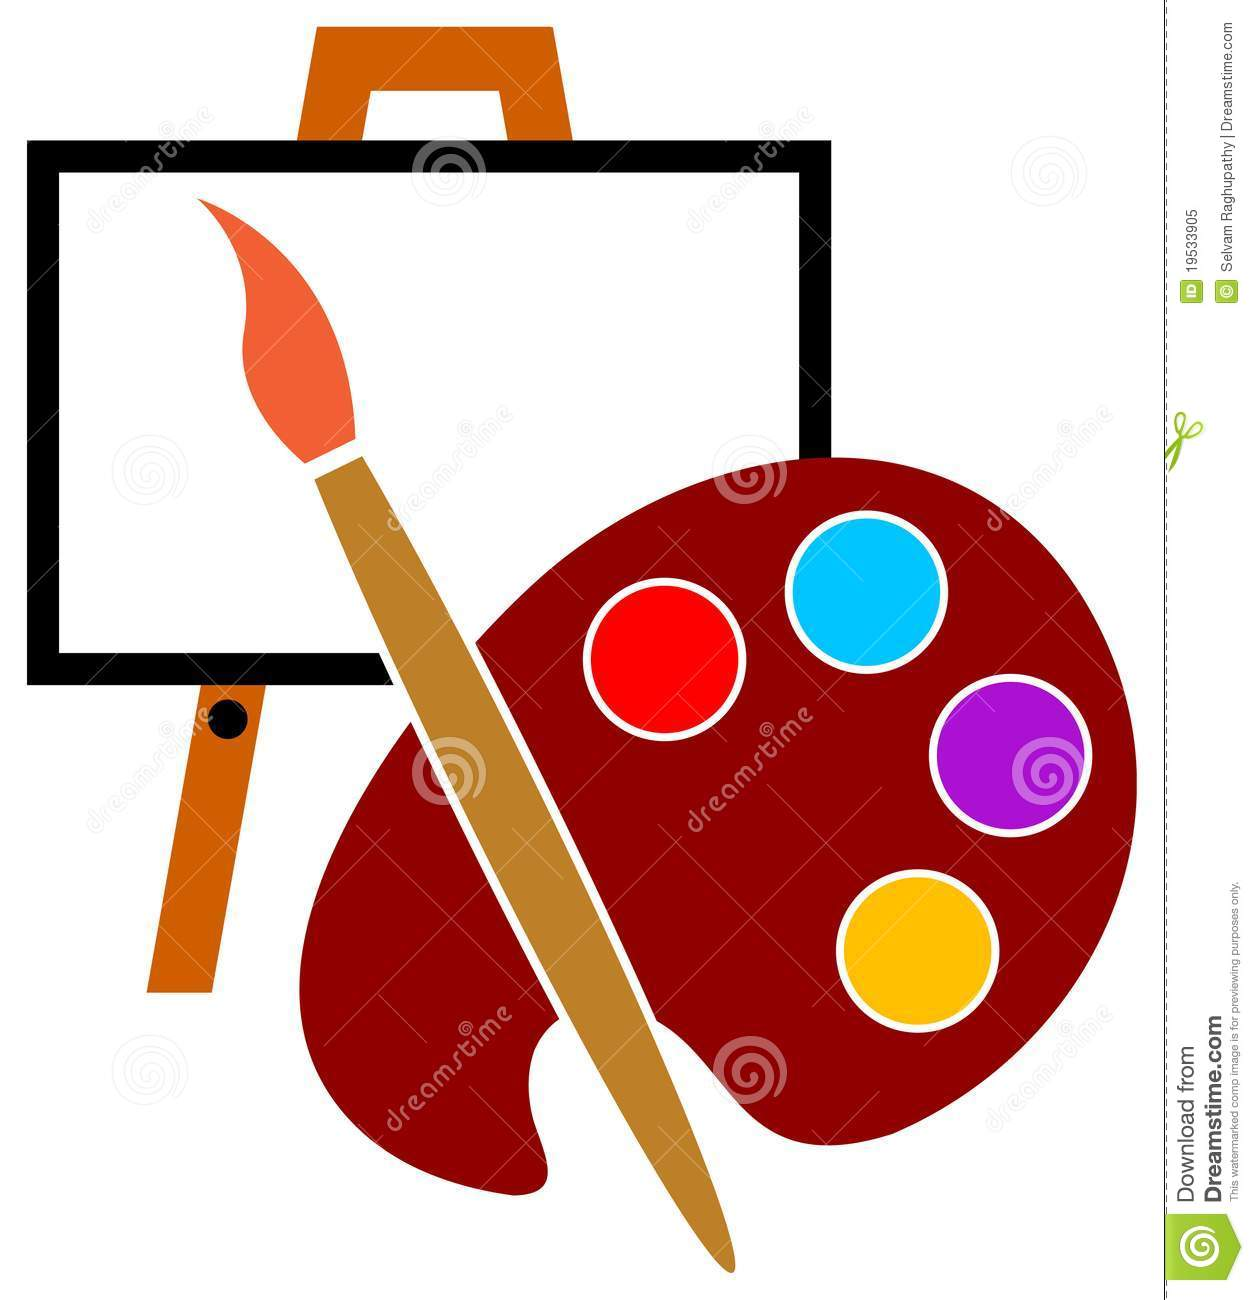 artist studio logo stock vector illustration of entertainment rh dreamstime com free logo clip art free artist logo maker